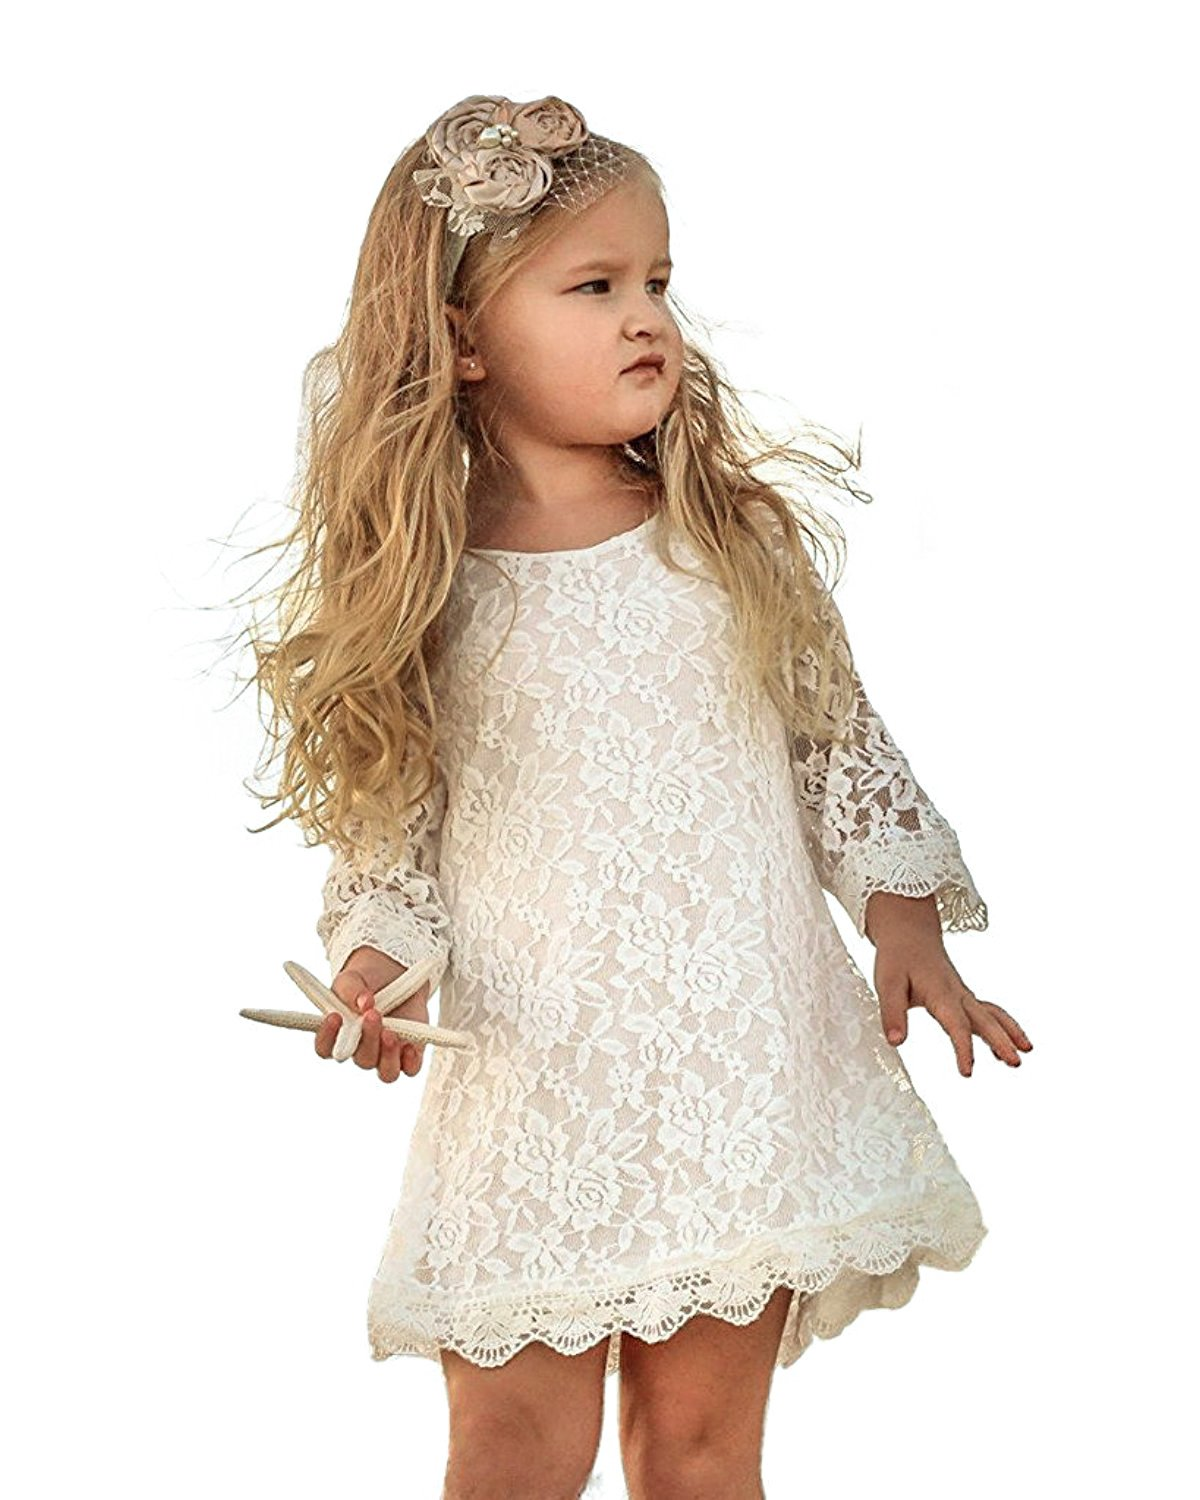 Tkiames Girls Easter Flower Lace Party Wedding Princess Dress 2-8Y